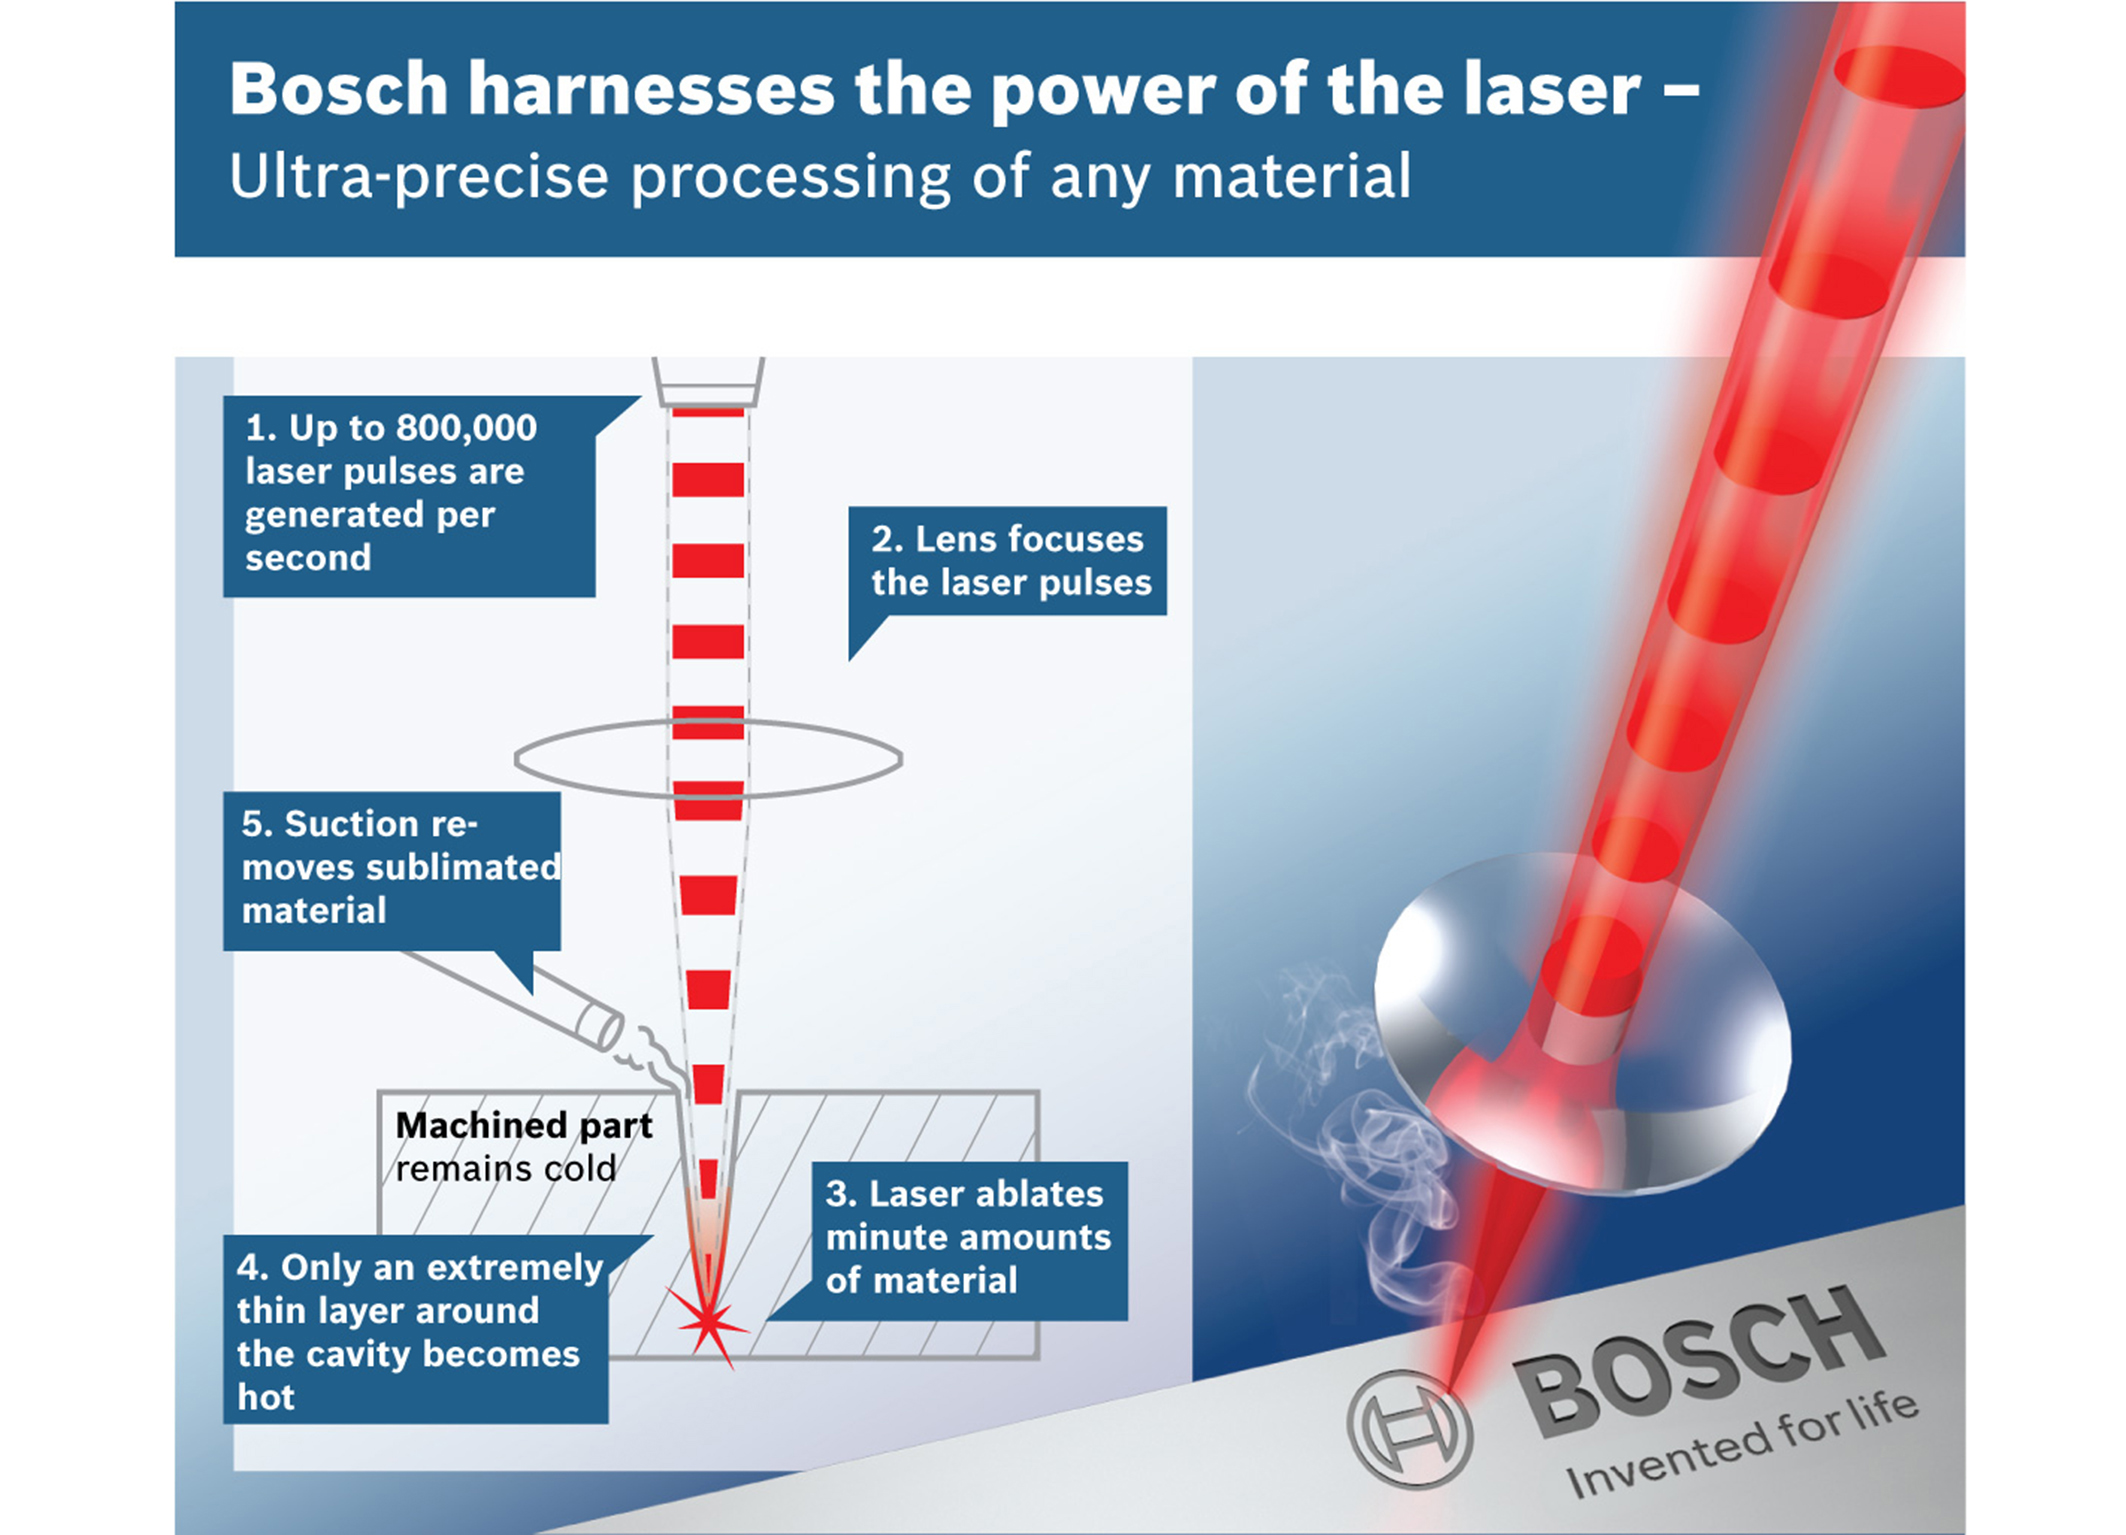 Lasers in manufacturing at Bosch